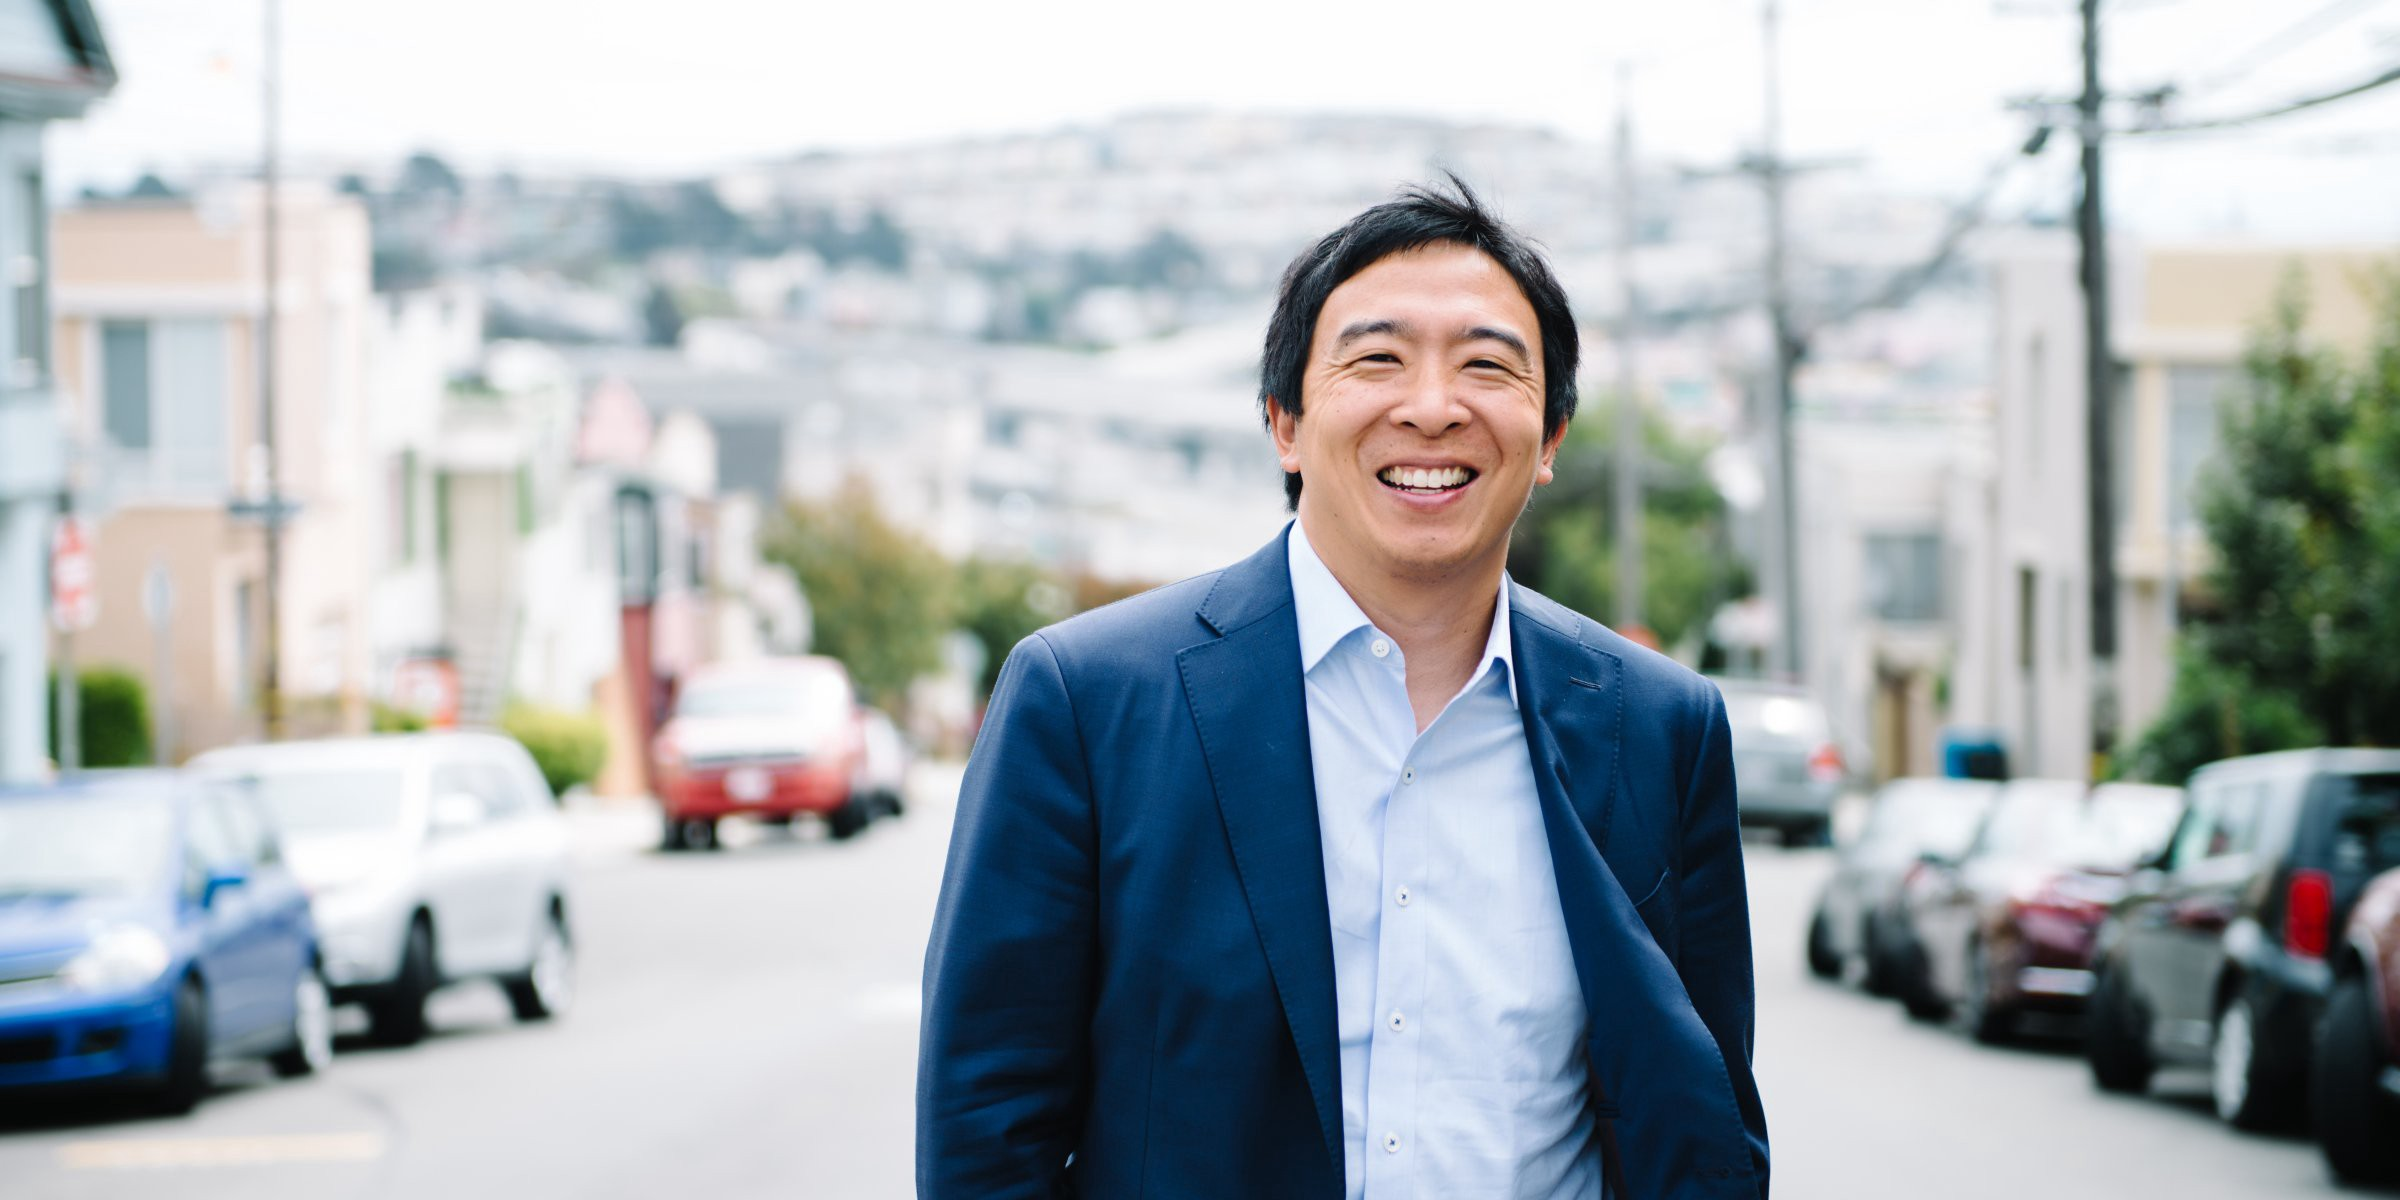 Picture of presidential candidate Andrew Yang